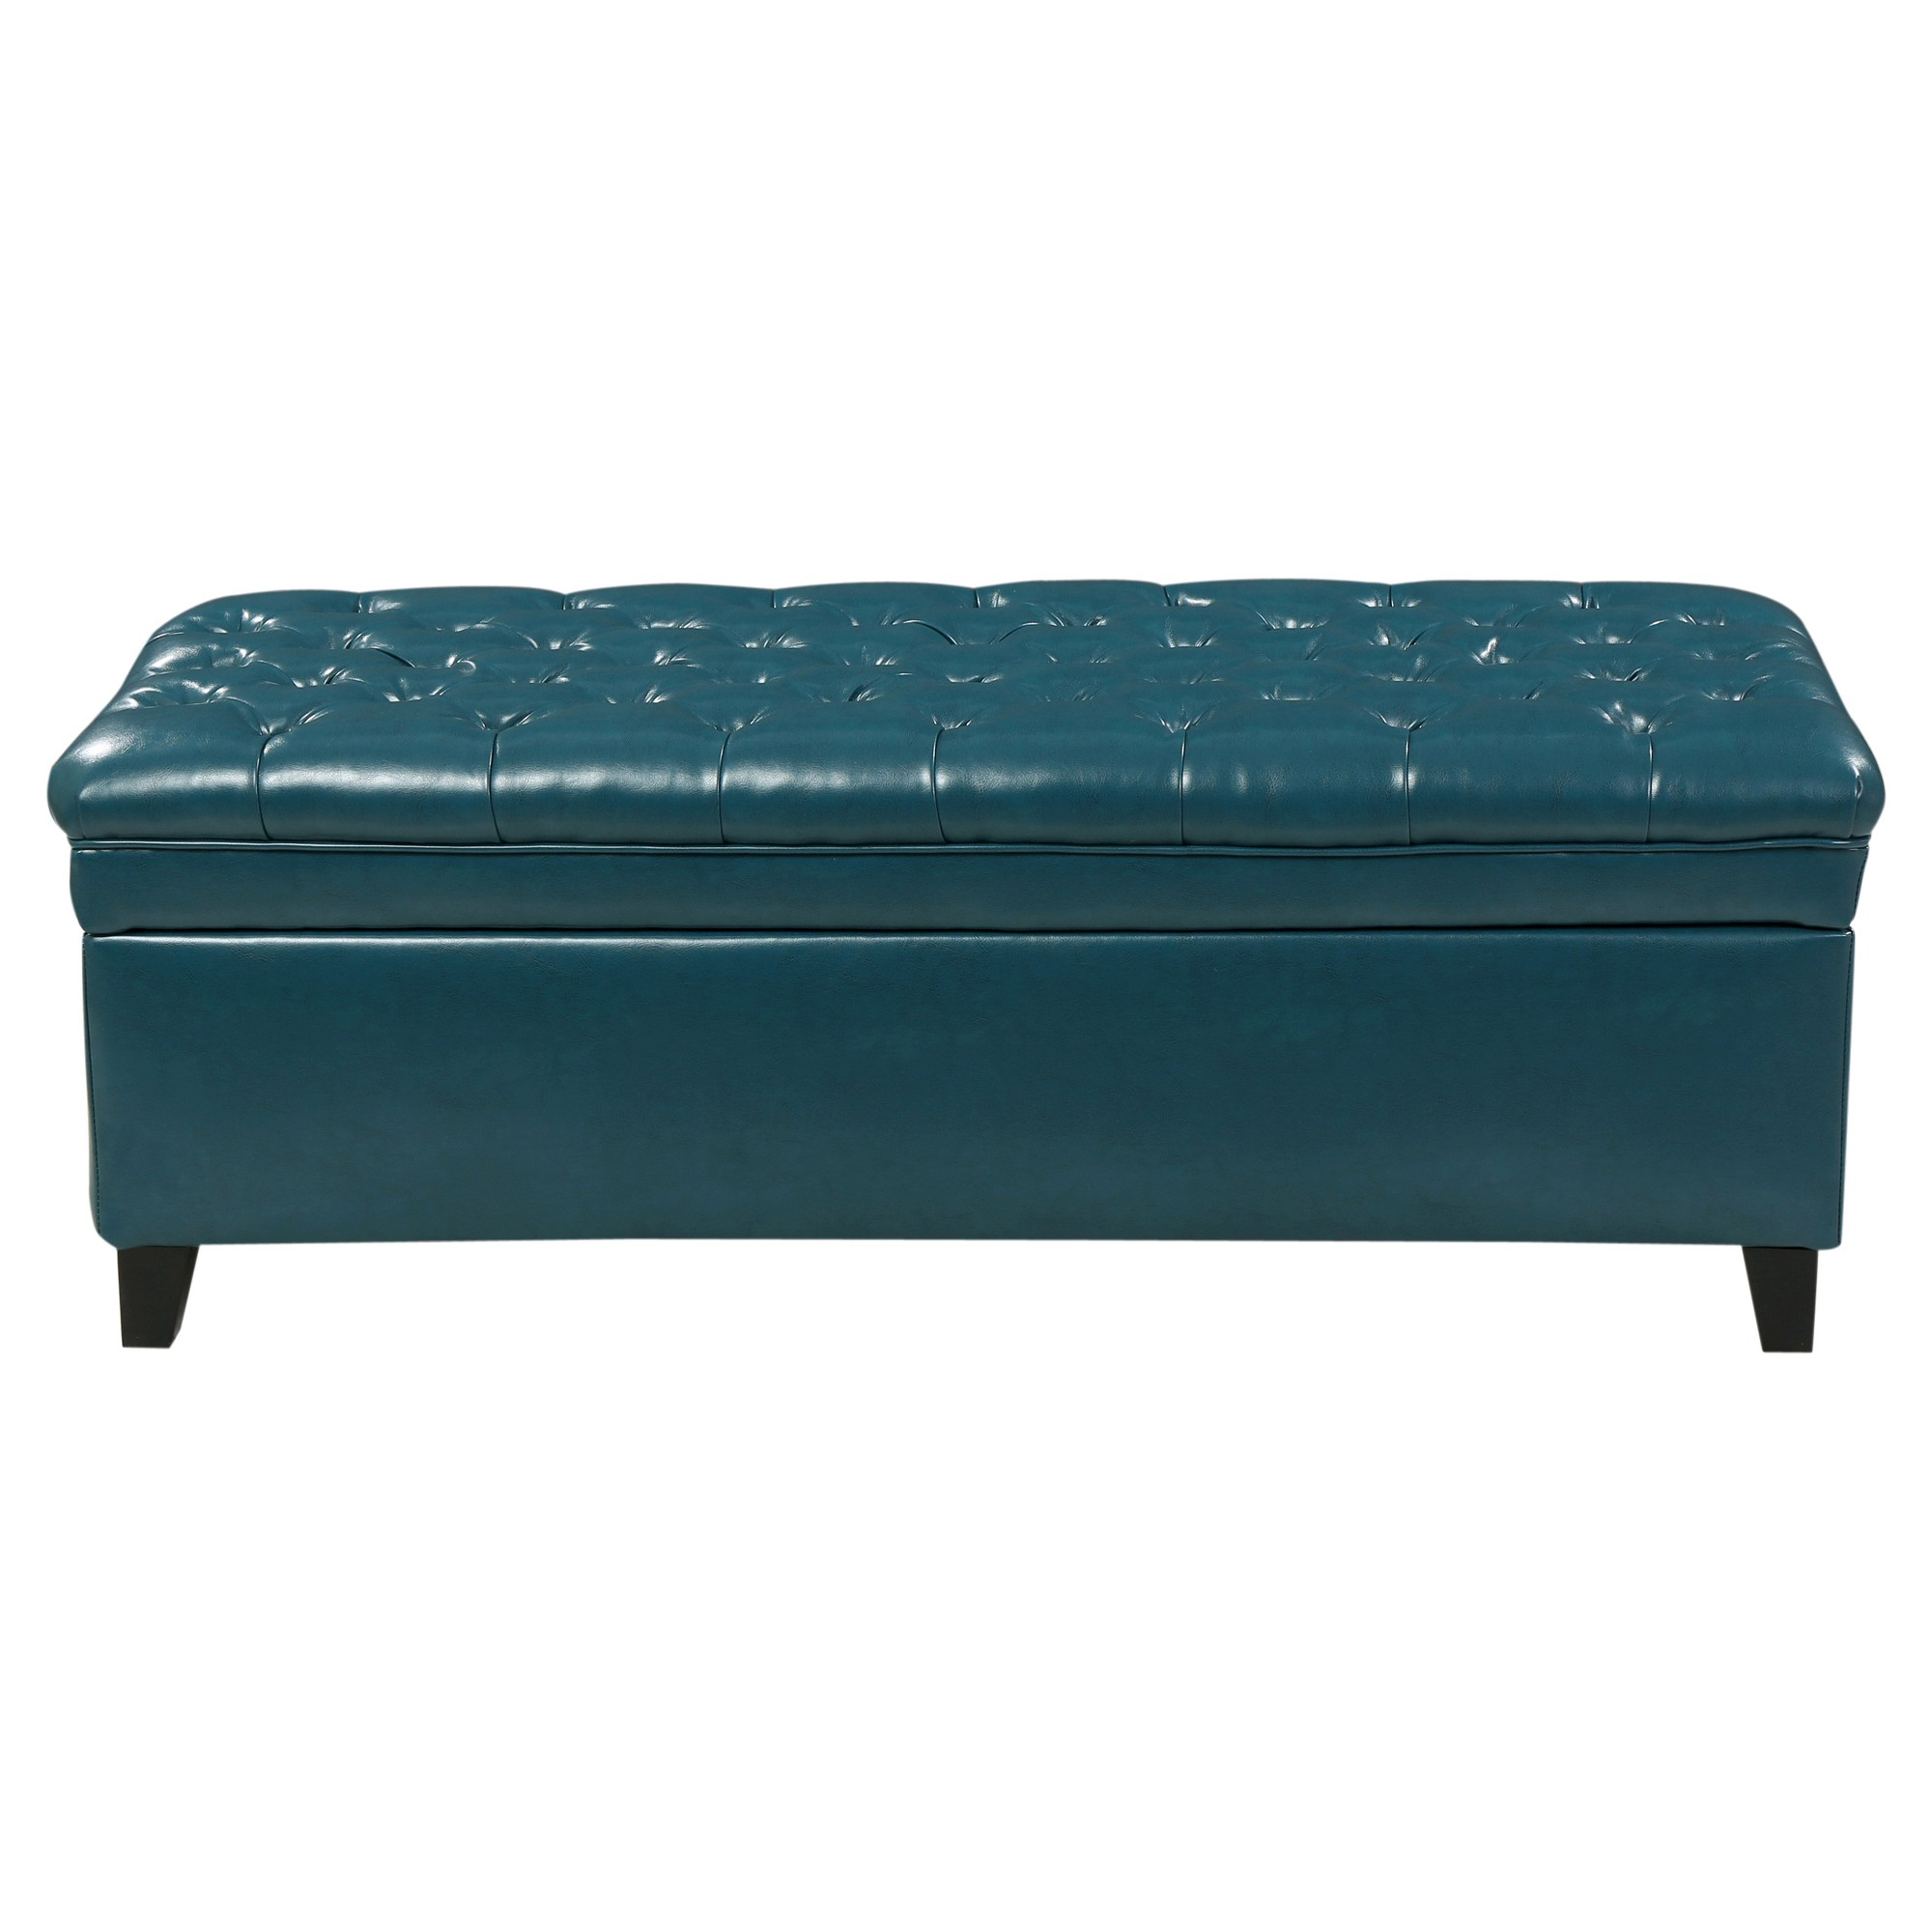 Juliana Tufted Faux Leather Storage Ottoman Dark Teal